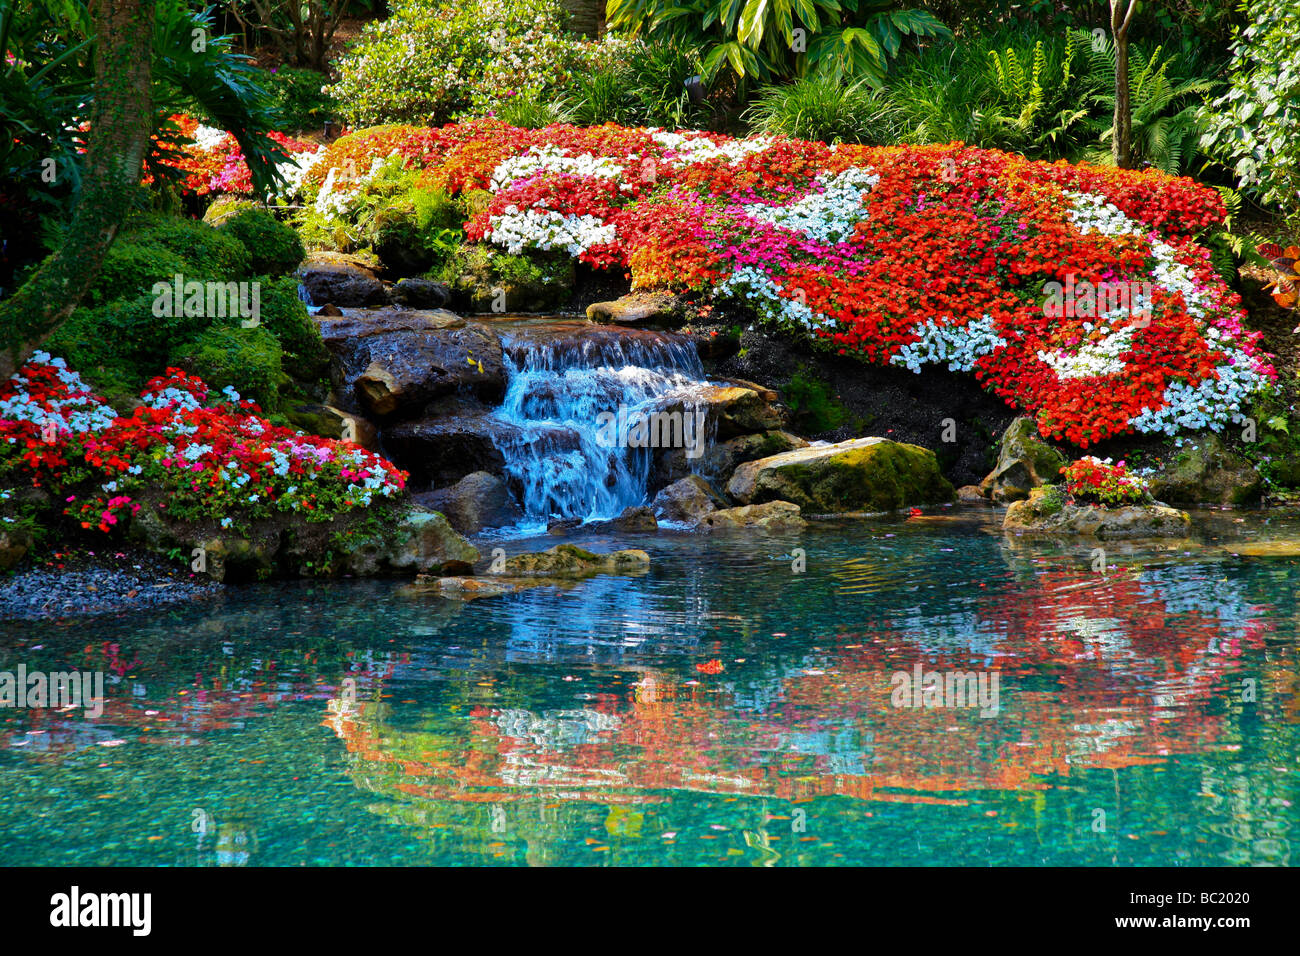 A Beautiful Flower Garden With Waterfall In Tropical Souther Florida USA America